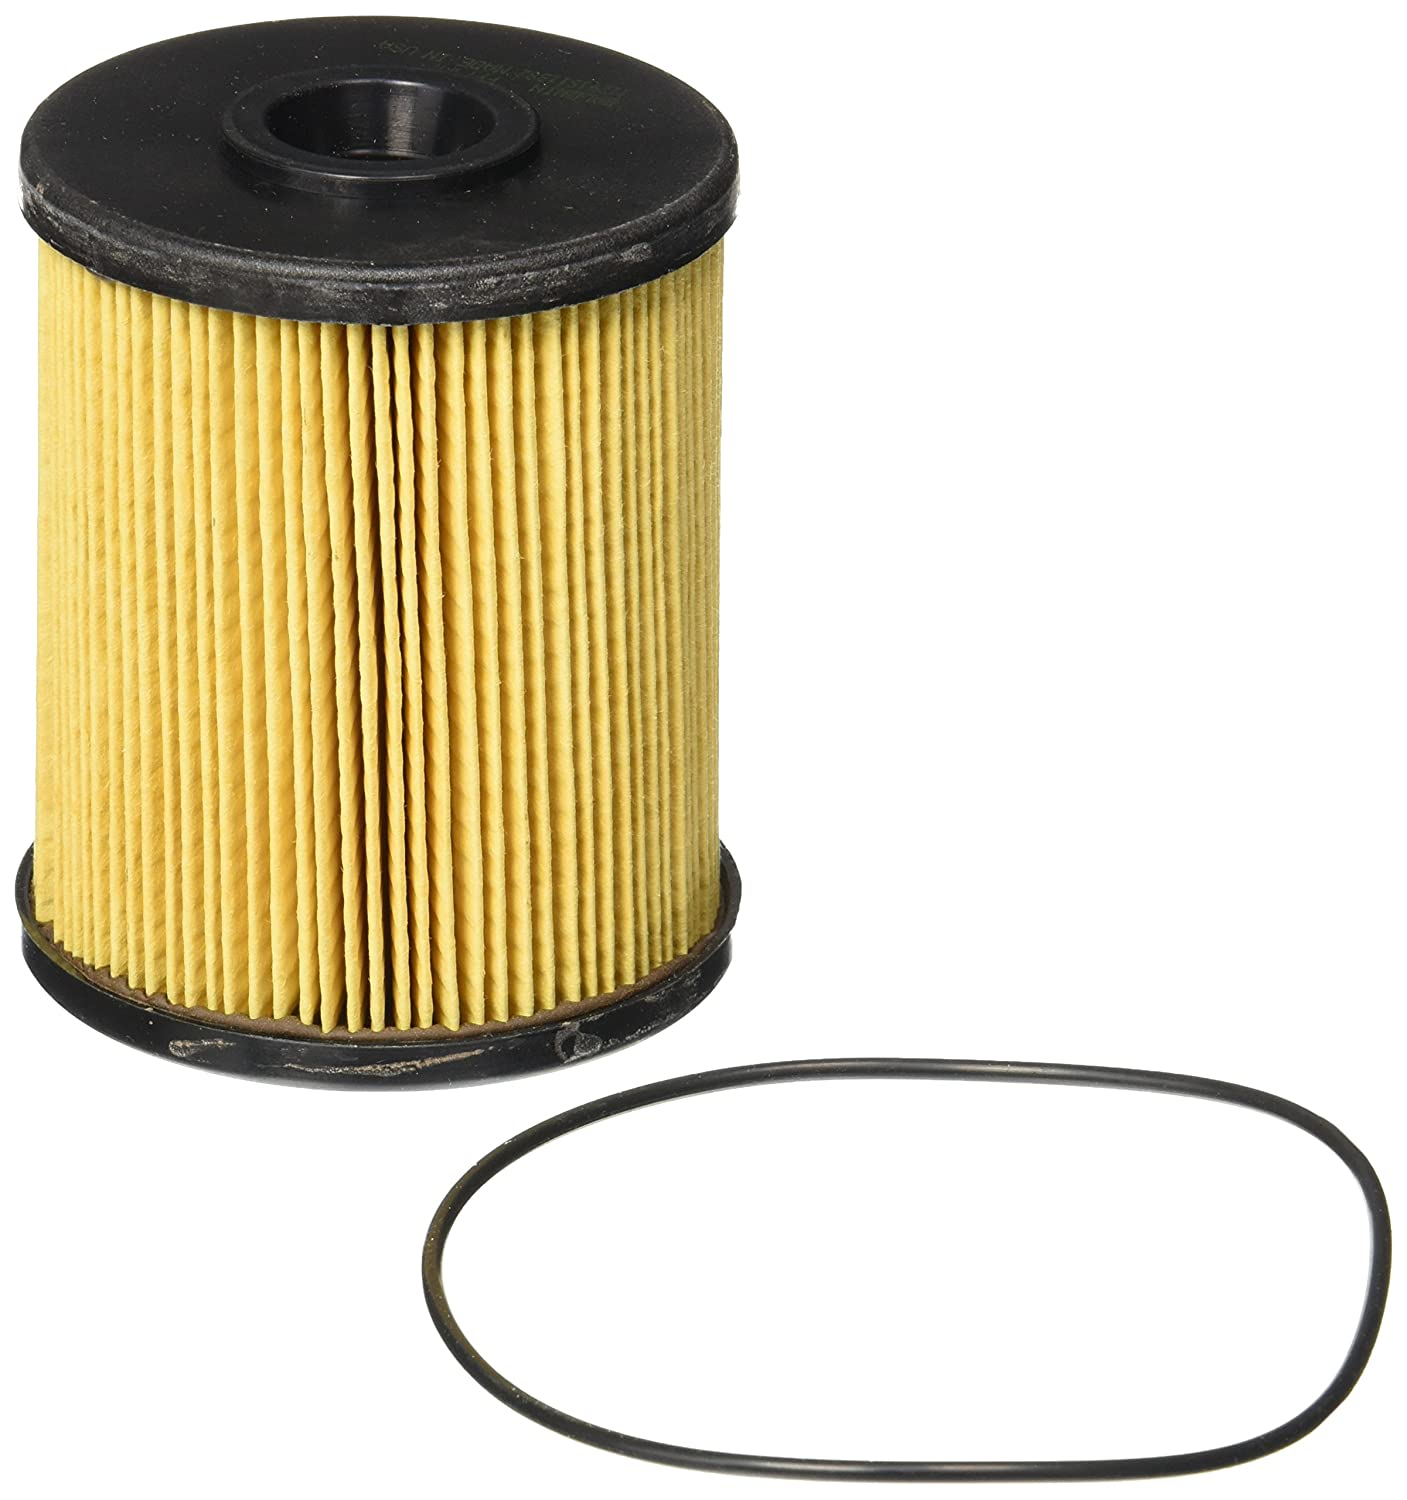 Baldwin Pf7977 Heavy Duty Fuel Filter Pack Of 2 2001 Ford Mustang Automotive